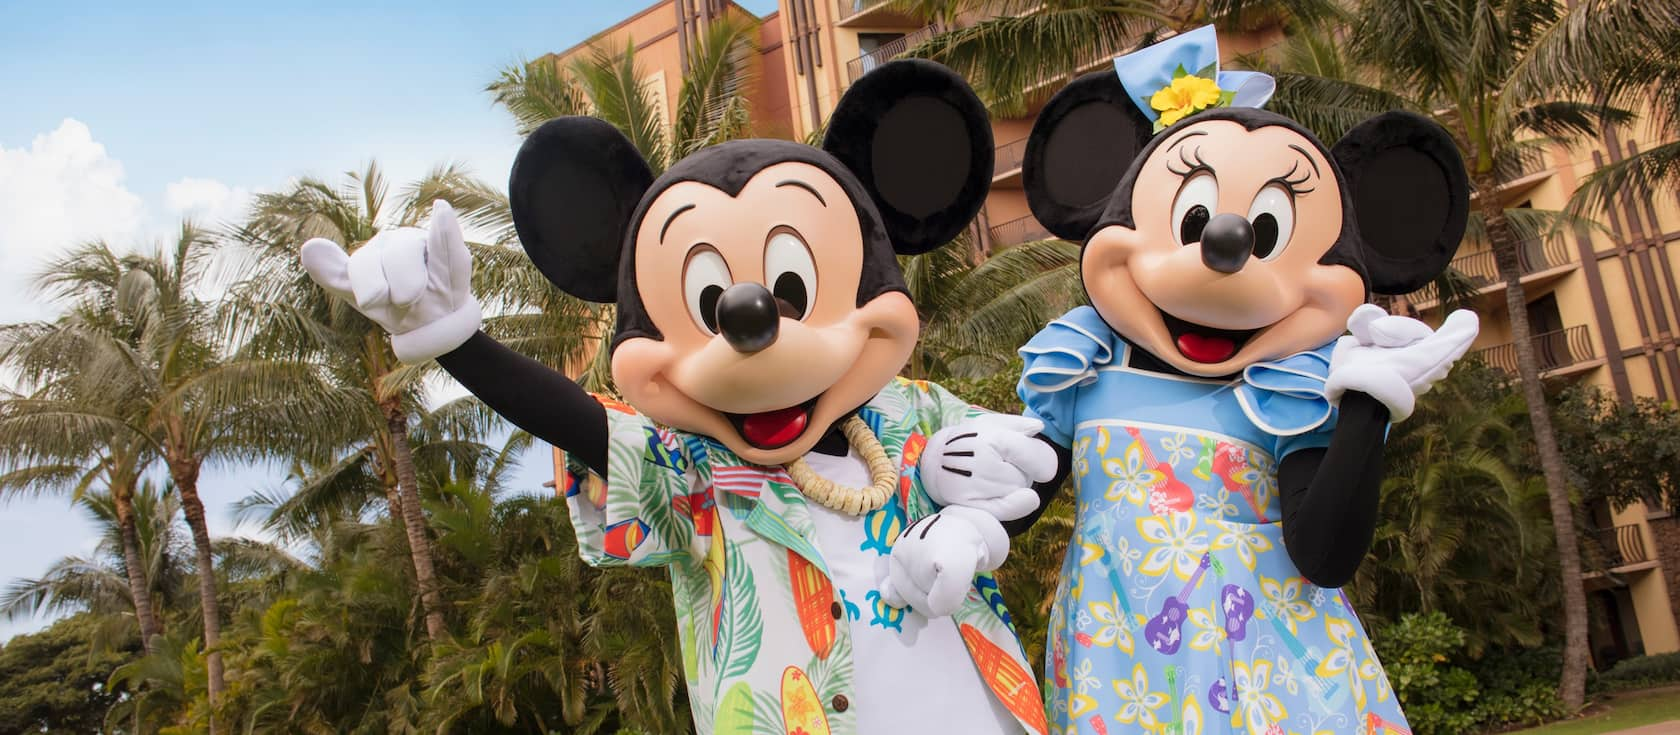 Mickey Mouse and Minnie Mouse, dressed in Hawaiian style outfits, stand in front of a wing of Aulani Resort